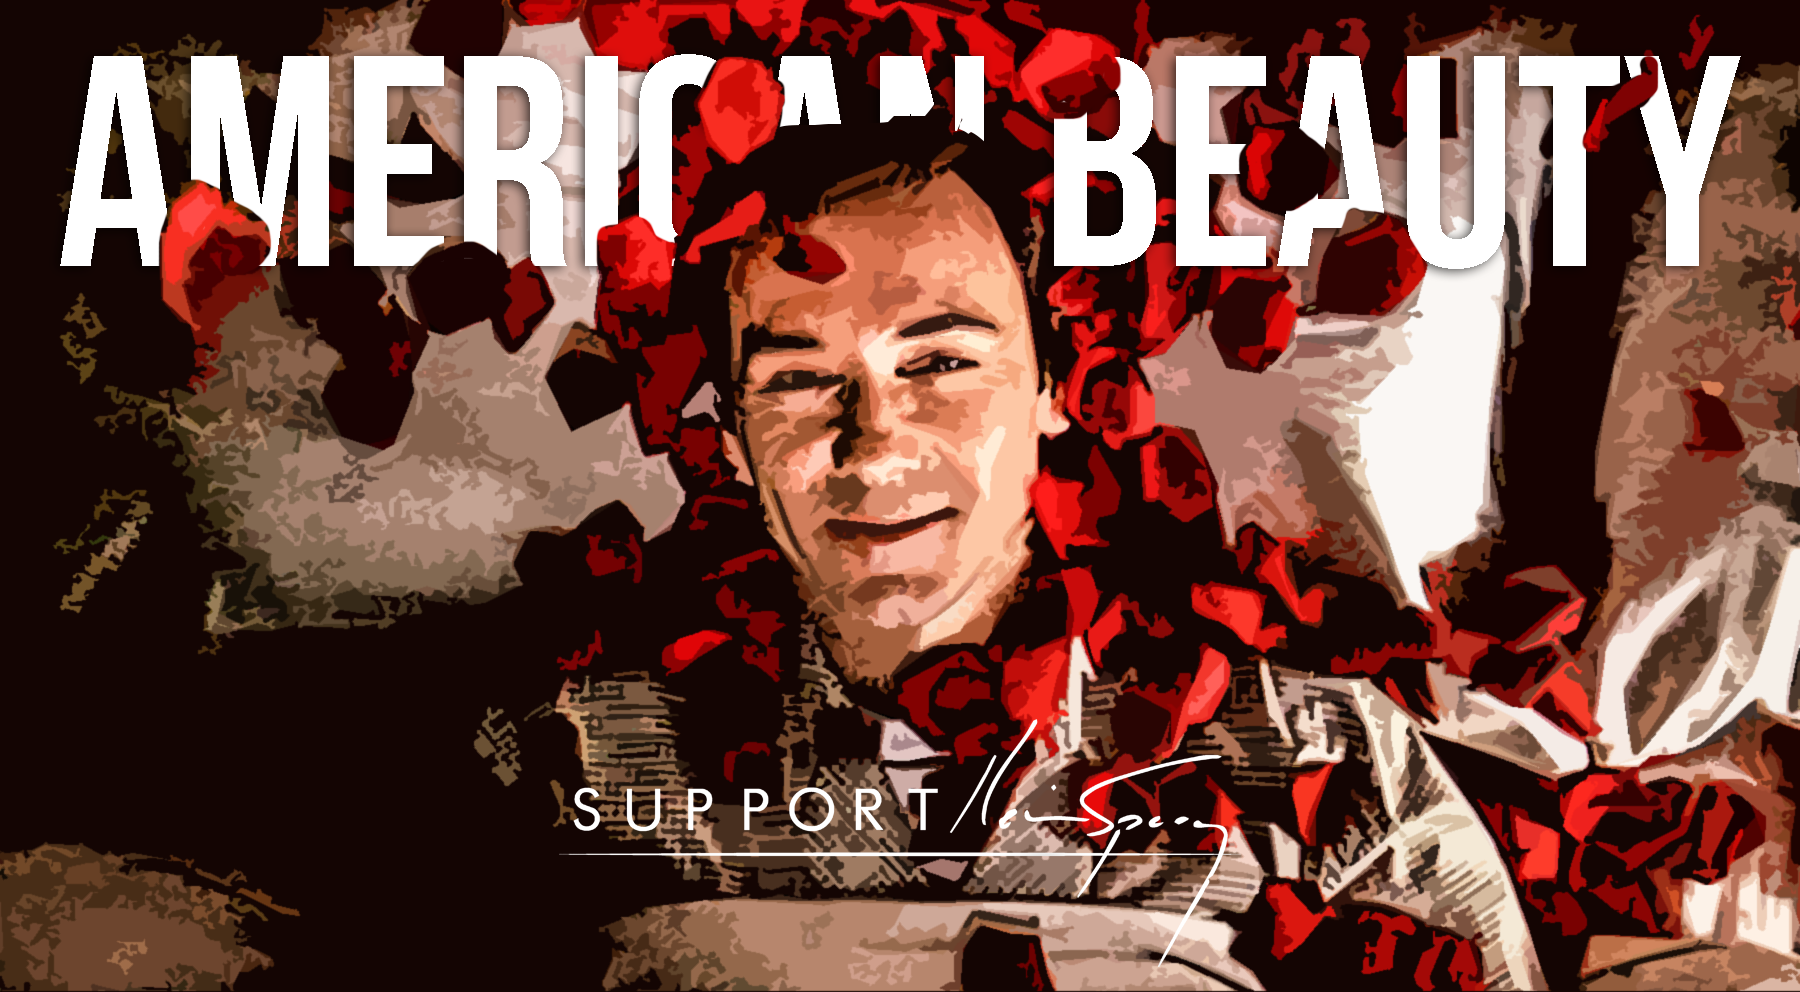 American Beauty Kevin Spacey Supportkevinspacey.com